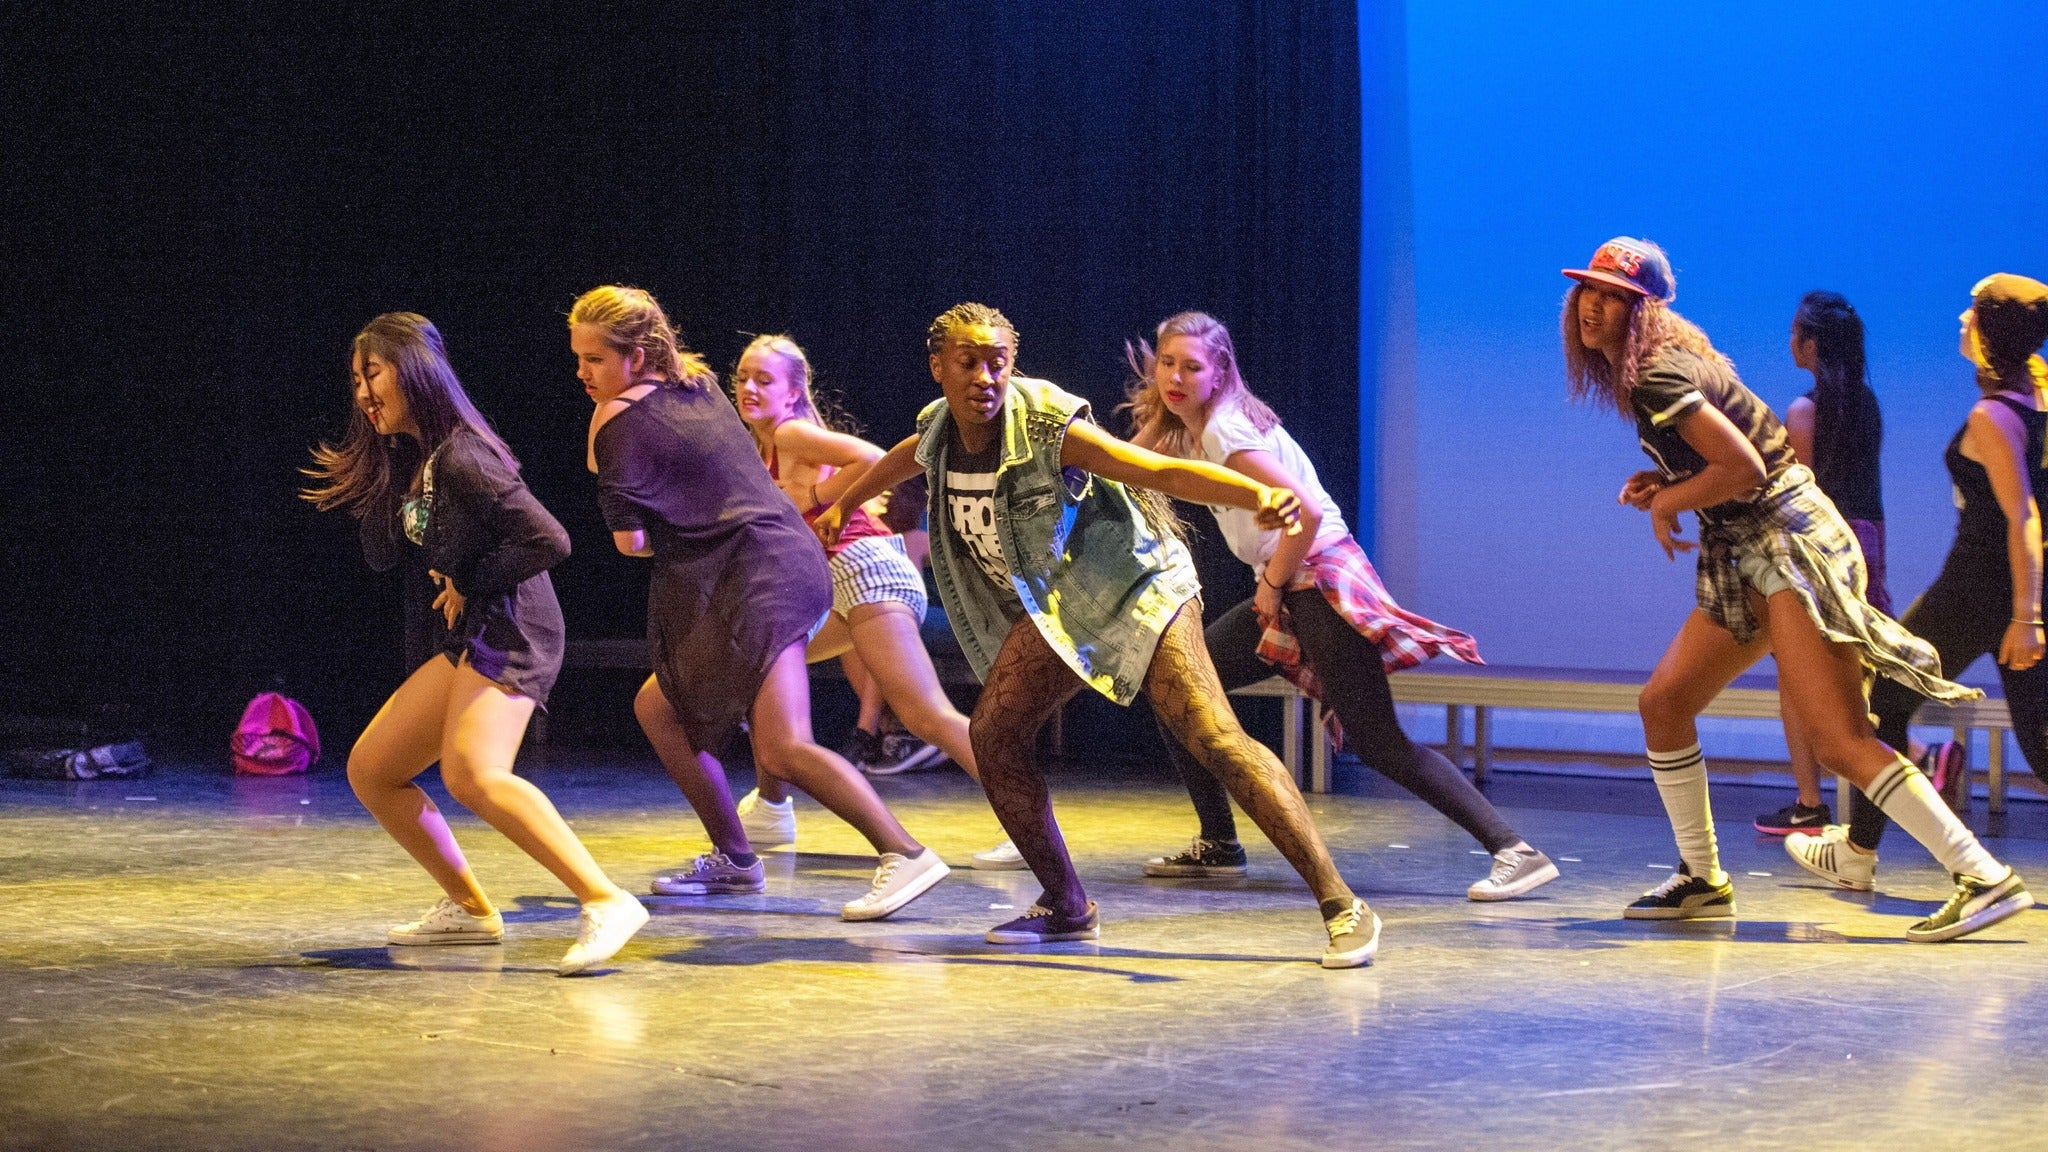 Celebration of Dance at Falbo Theatre